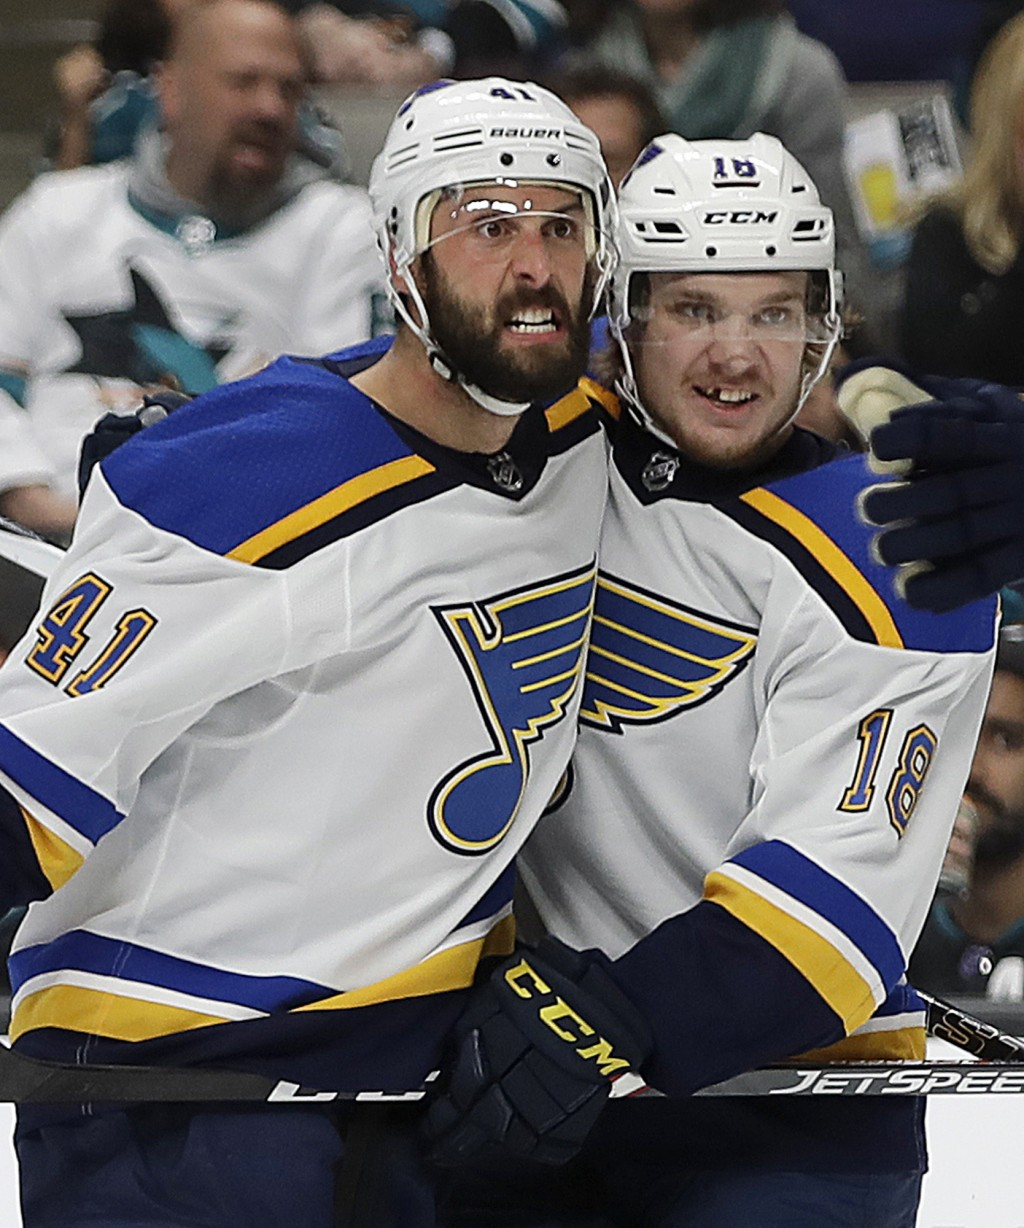 St. Louis Blues' Robert Bortuzzo, left, celebrates with teammate Robert Thomas (18) after scoring a goal against the San Jose Sharks in the second per